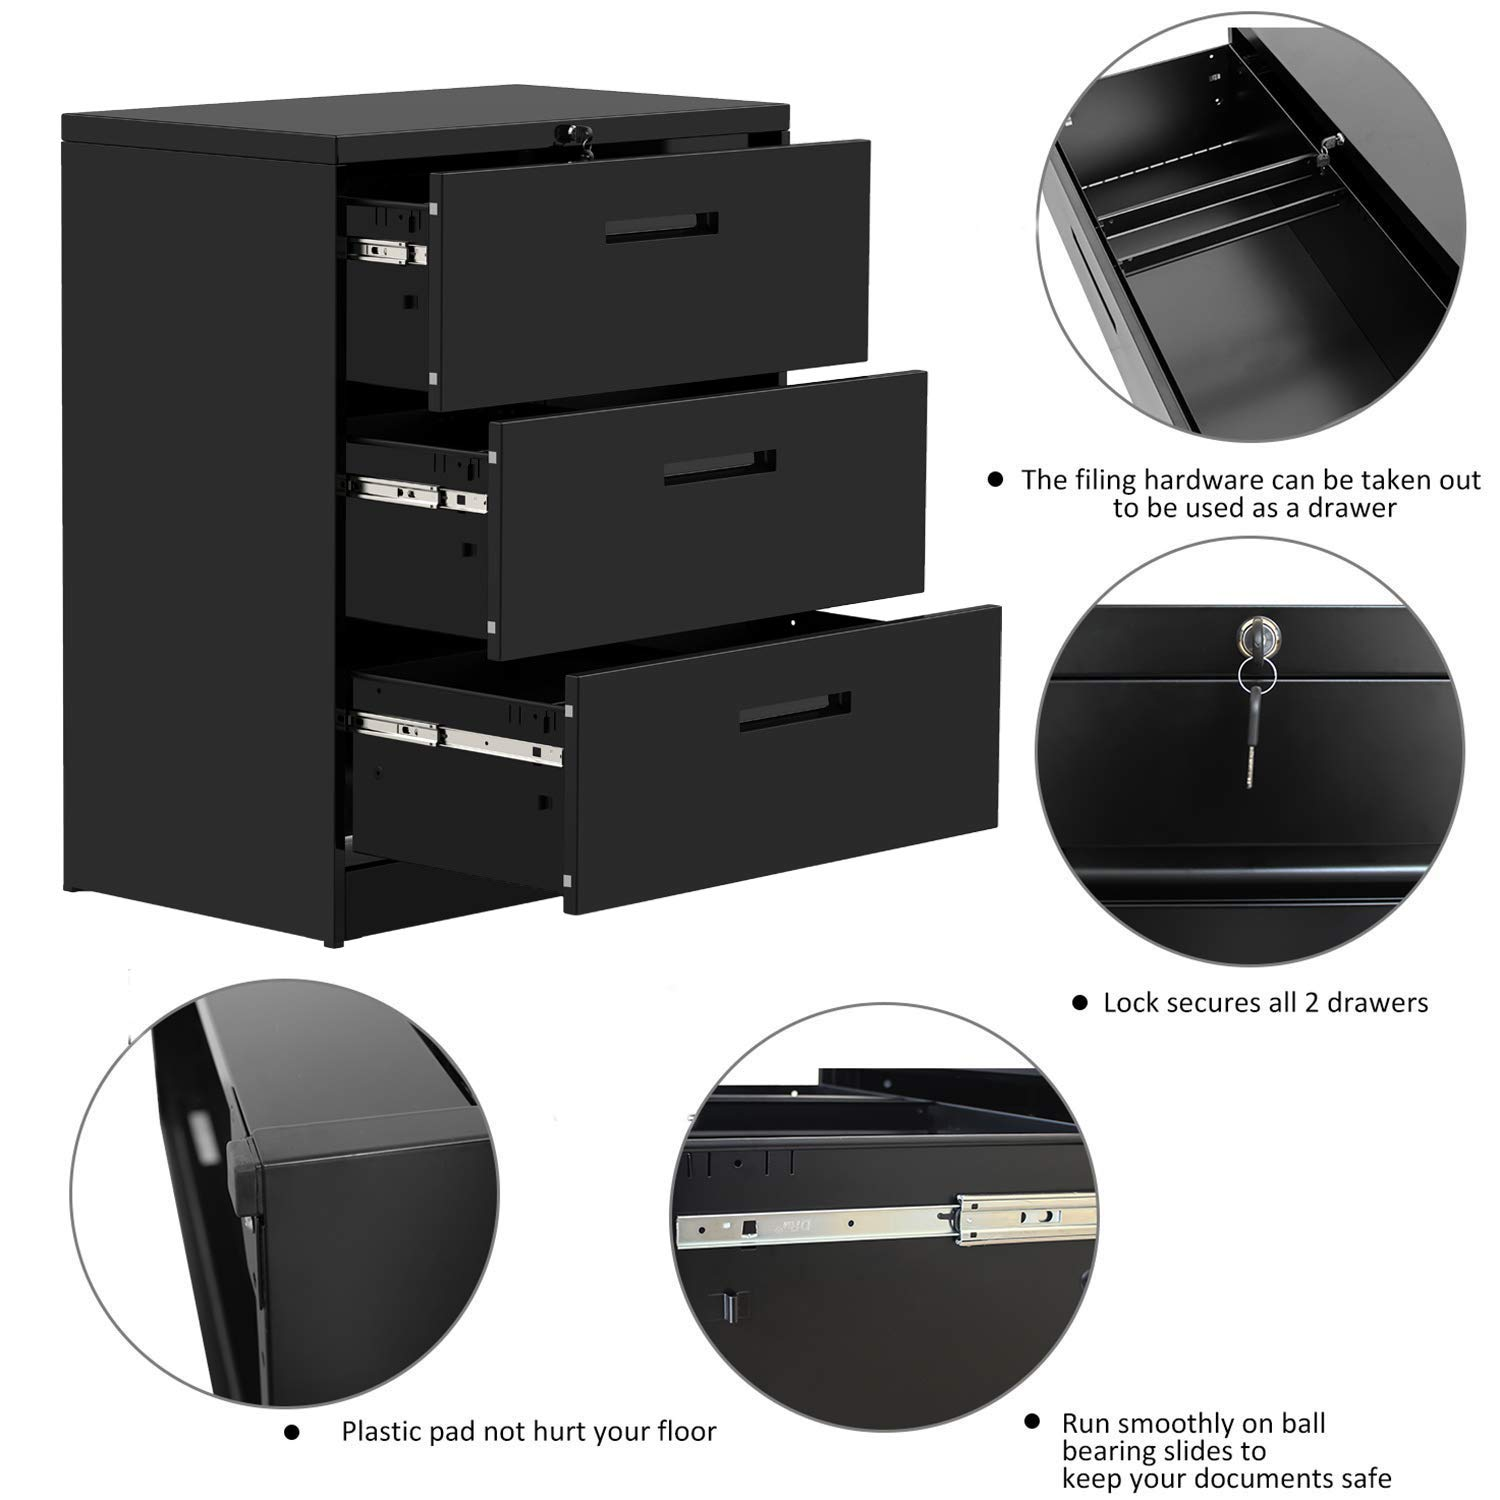 Merax lateral File Cabinet 2 Drawer Locking Filing Cabinet 3 Drawers Metal Organizer with Heavy Duty Hanging File Frame for Legal & Business Files Office Home Storage by Merax (Image #2)